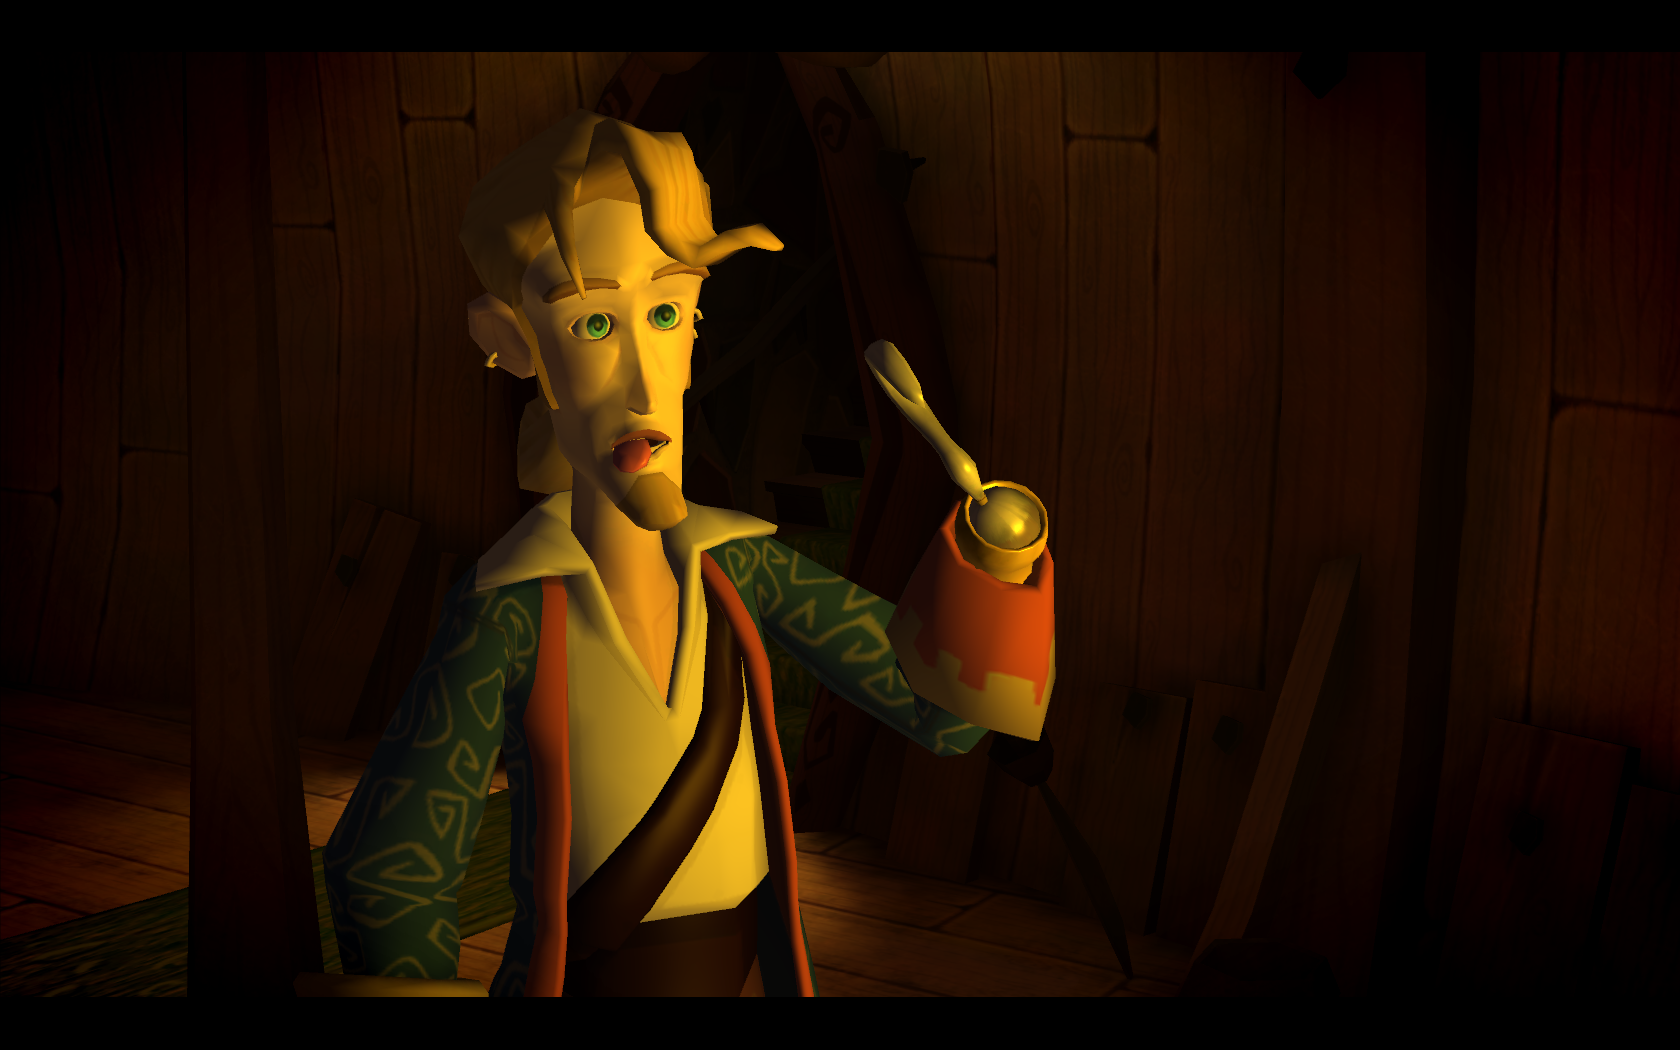 Guybrush goes bleeuh